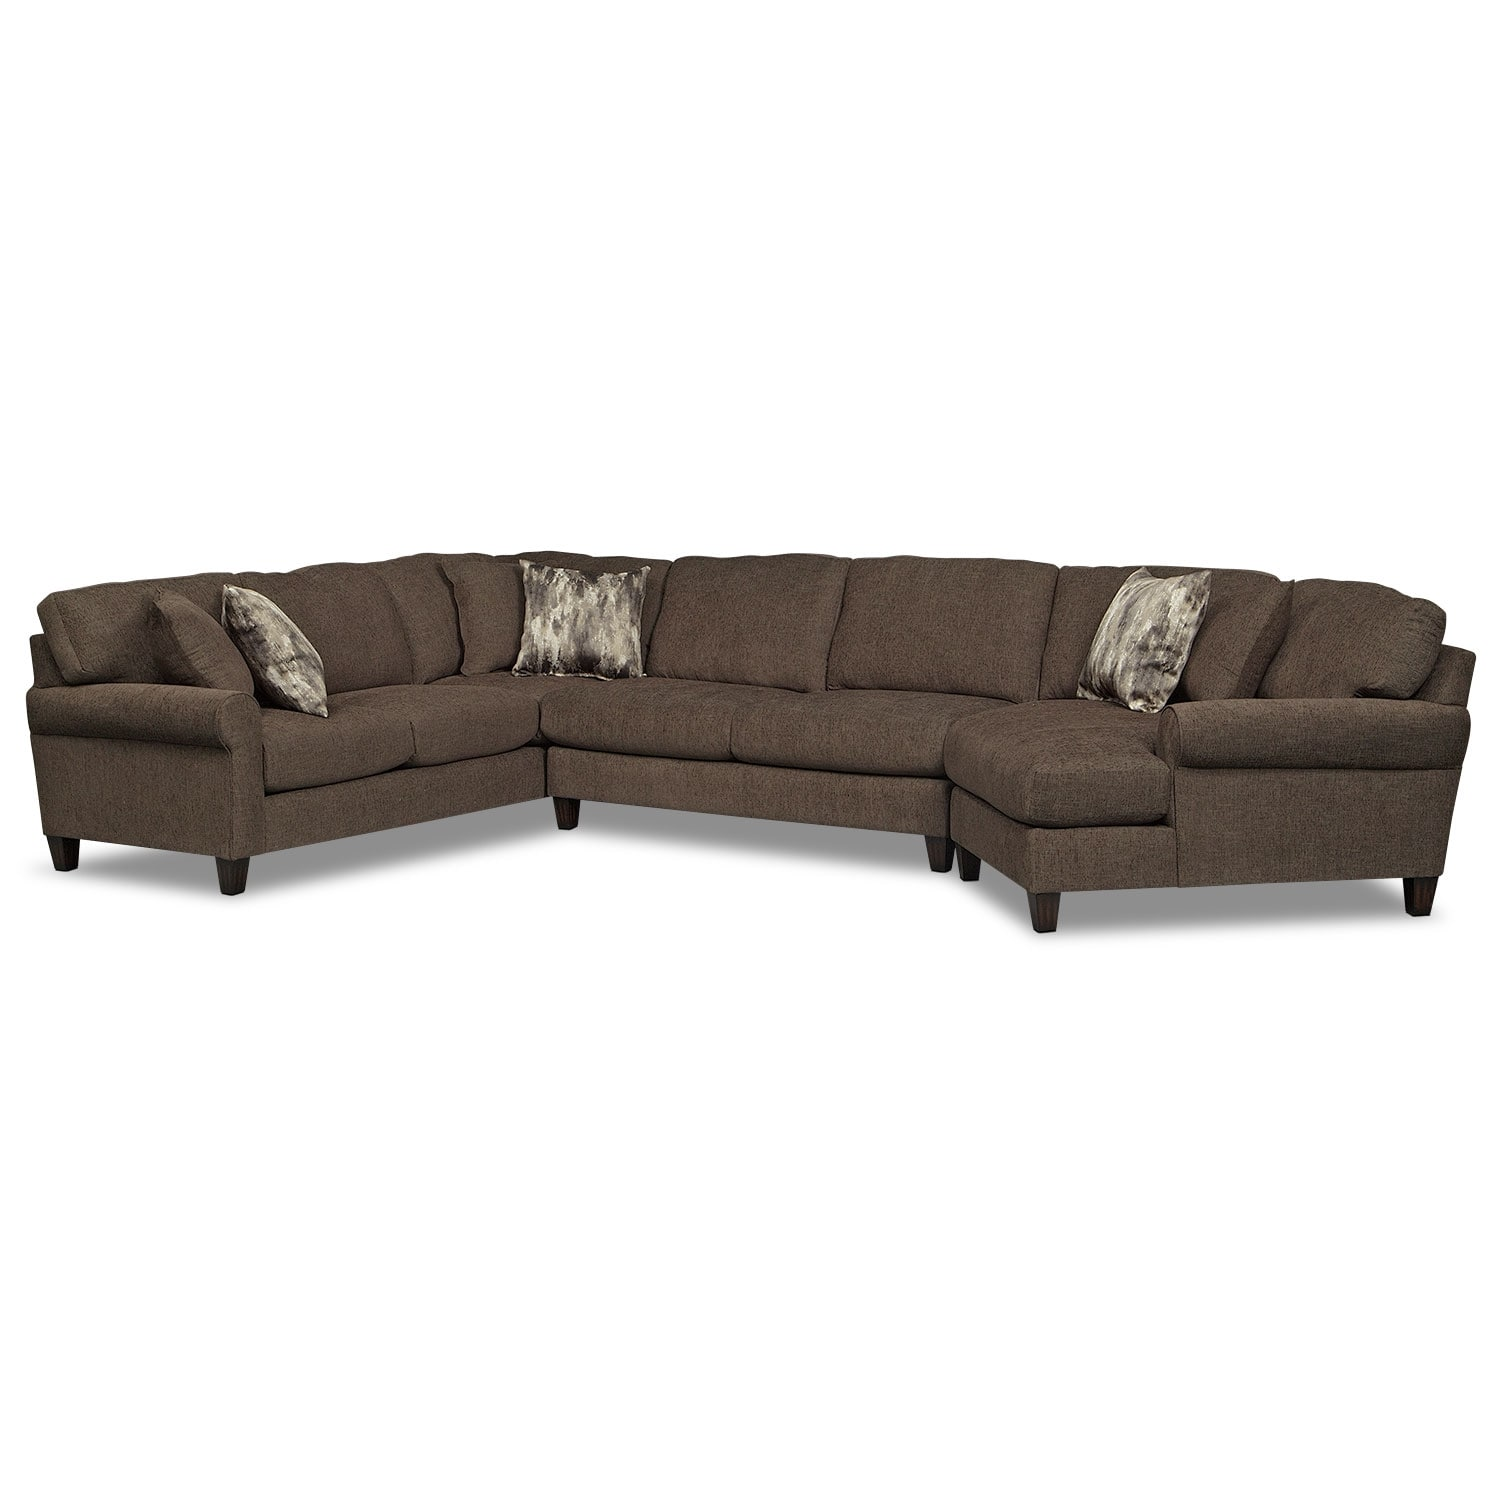 Karma 3-Piece Sectional with Right-Facing Cuddler - Smoke